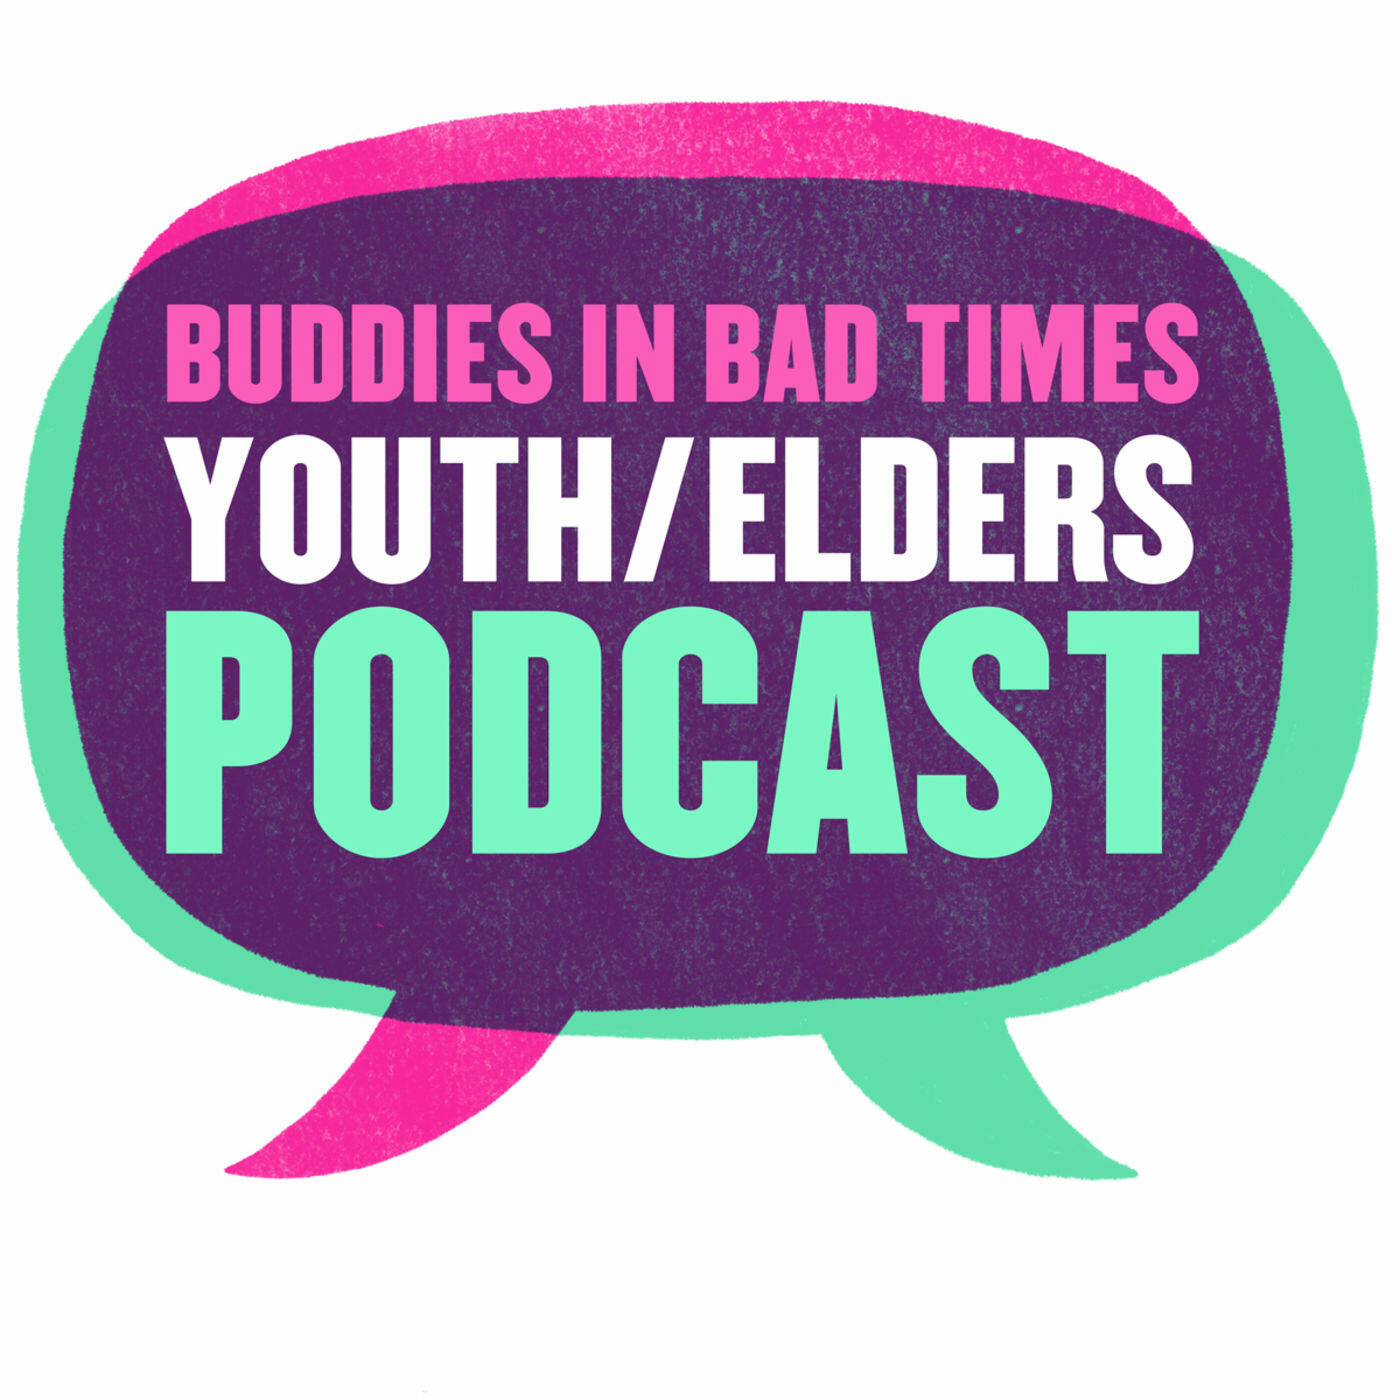 The Youth / Elders Podcast